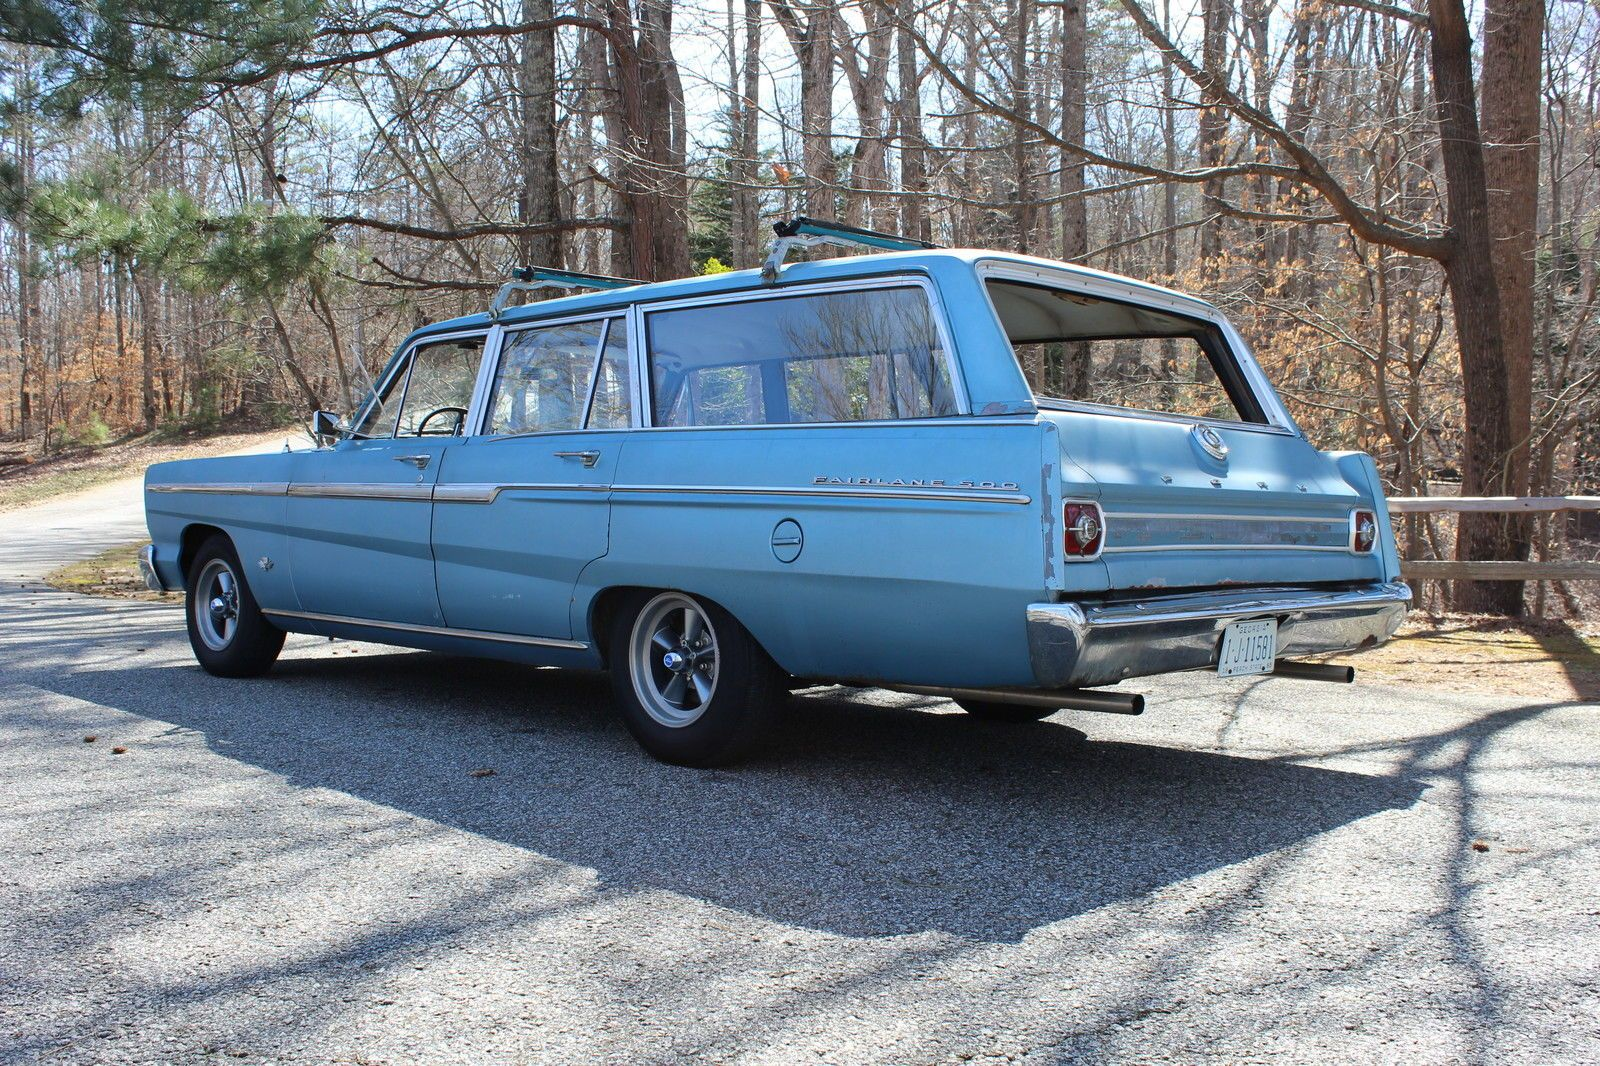 65 Ford Fairlane 500 Station Wagon No Question As To Why It Was